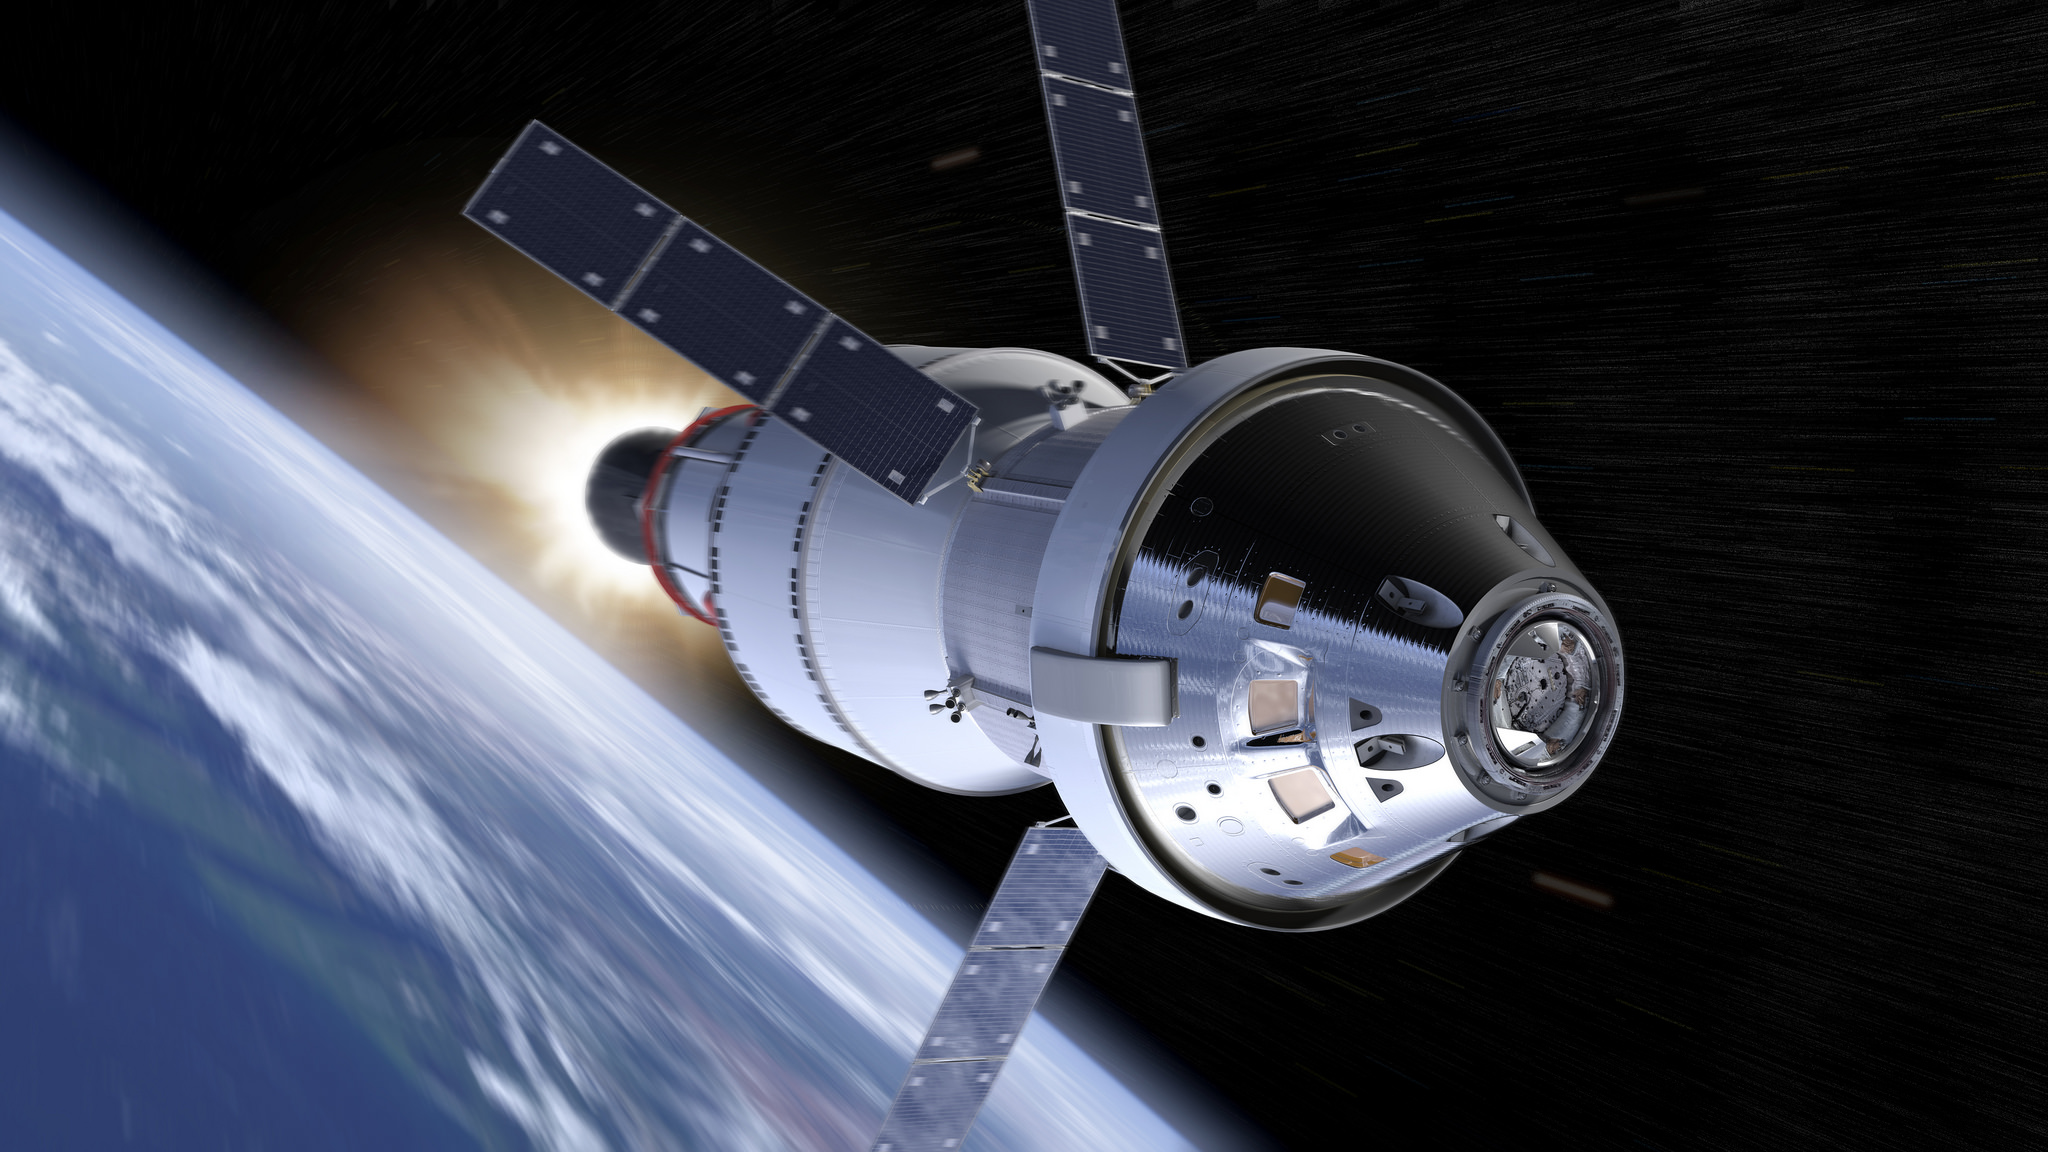 NASA's next Orion flight could be manned